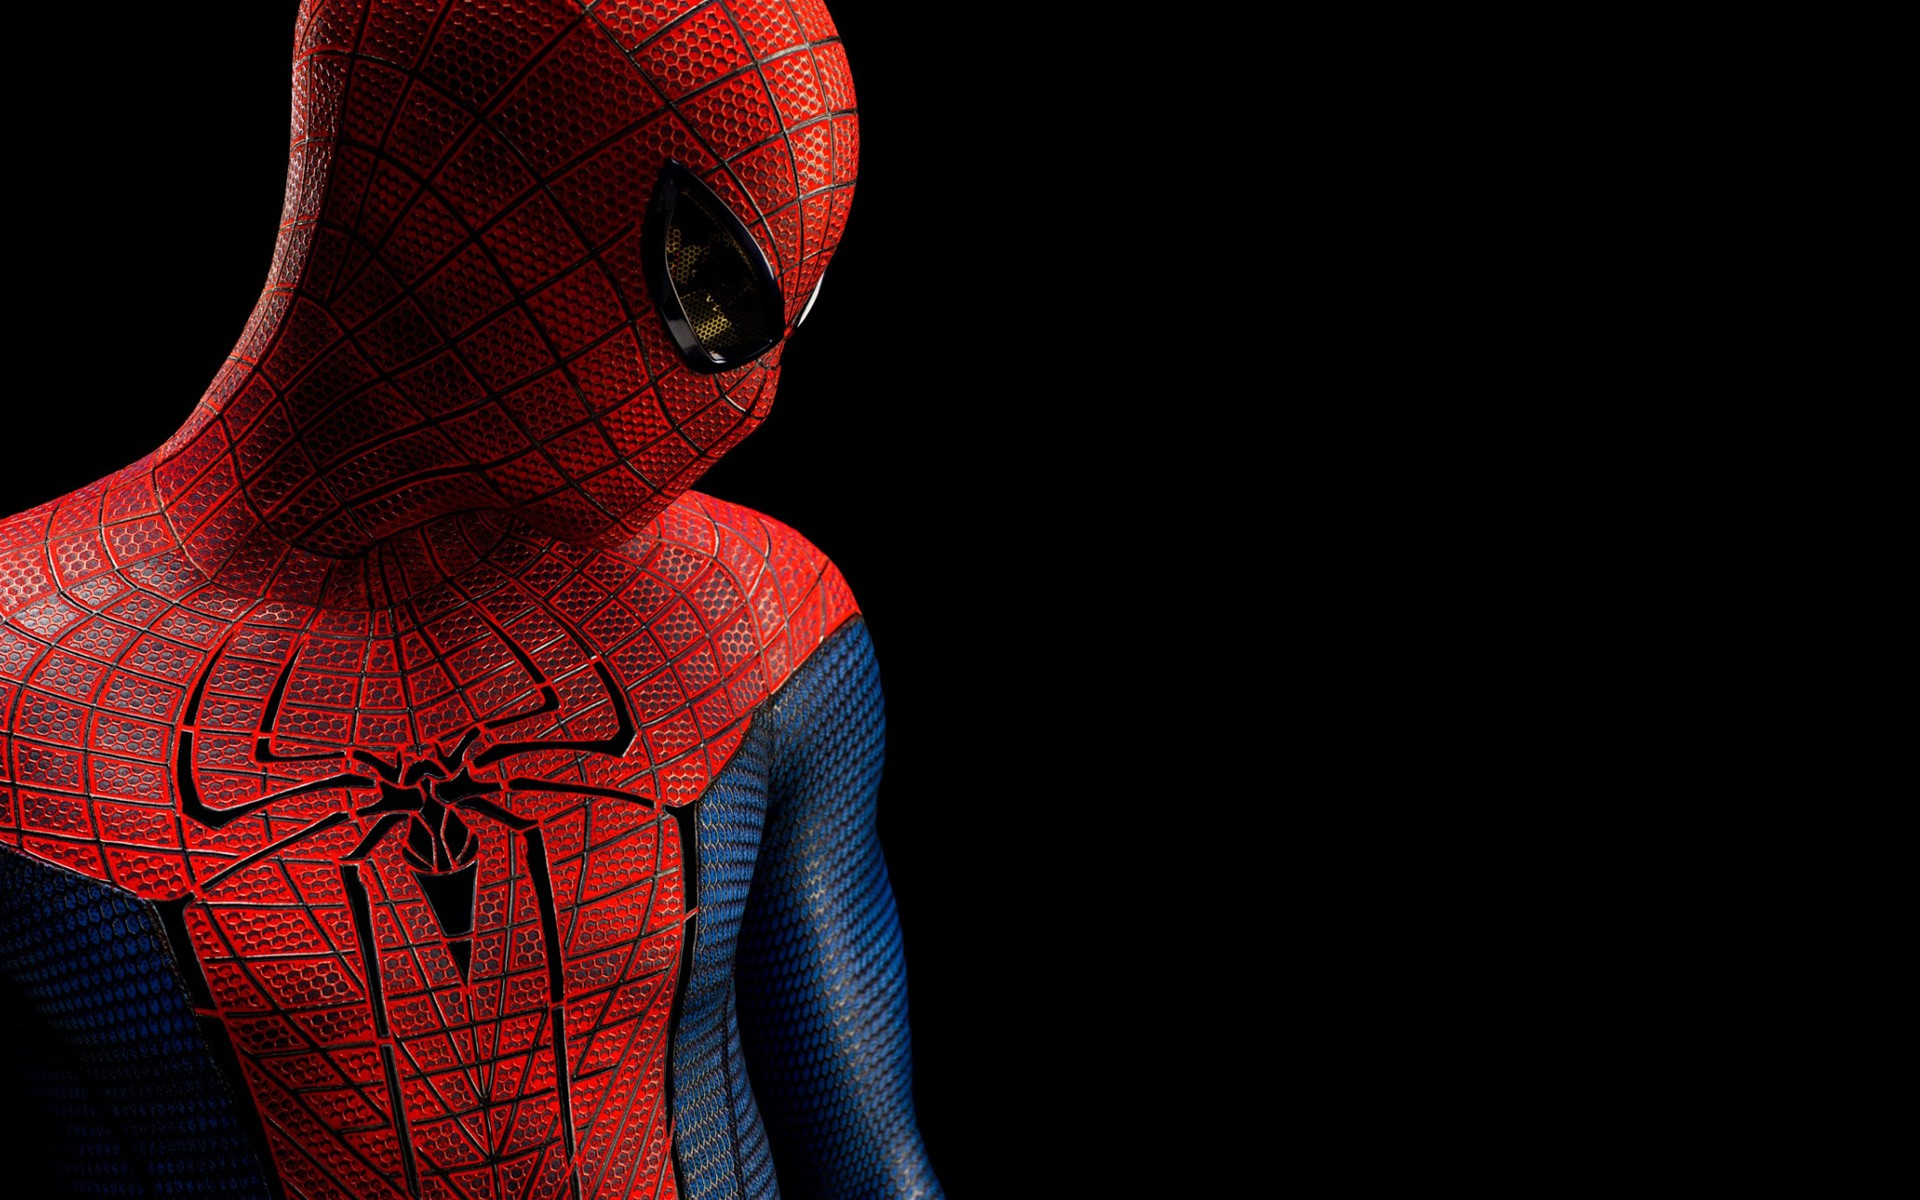 spiderman wallpaper hd ·① download free hd wallpapers for desktop